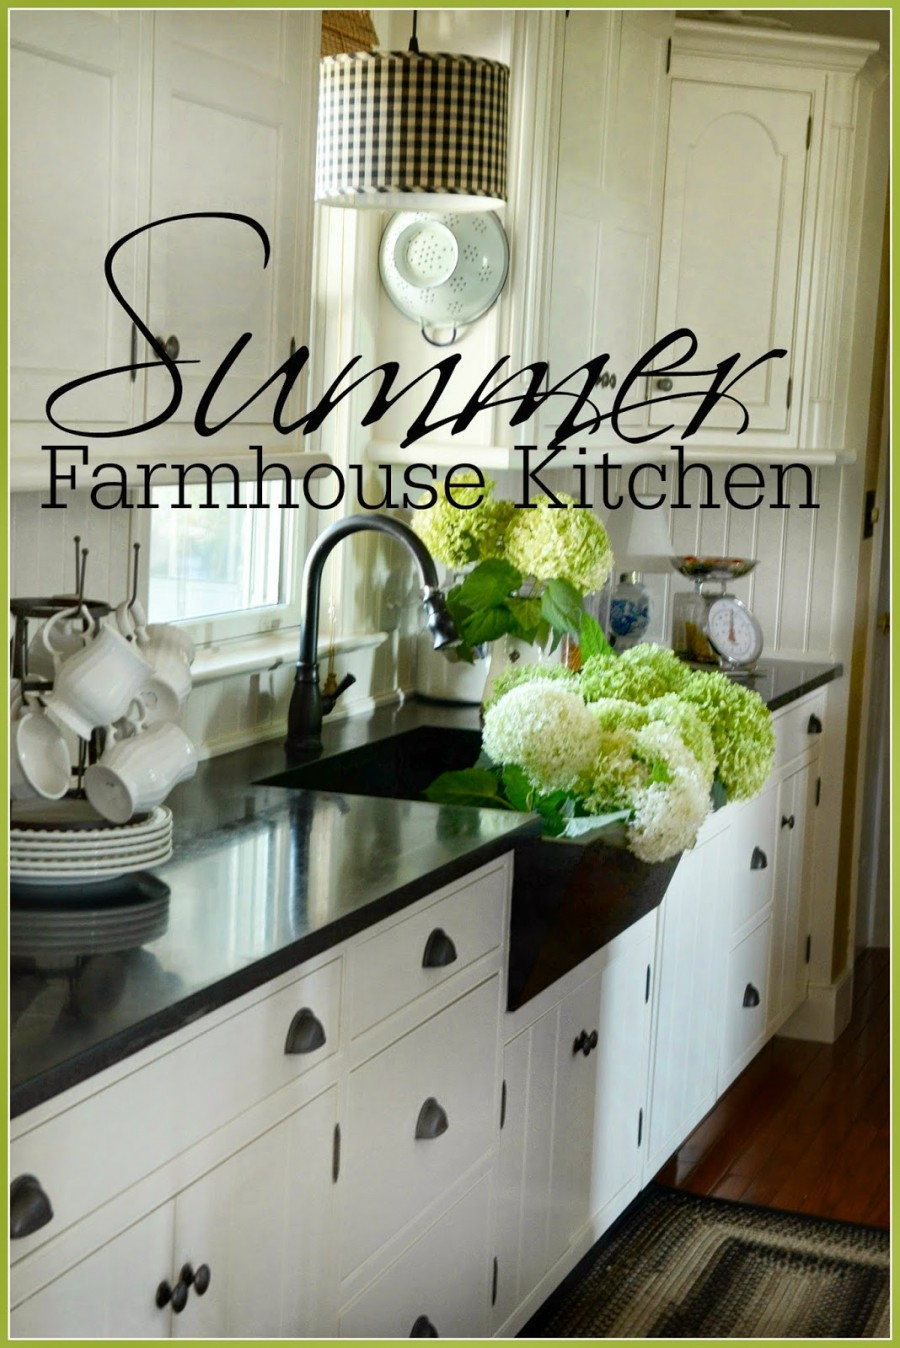 THE SUMMER FARMHOUSE KITCHEN